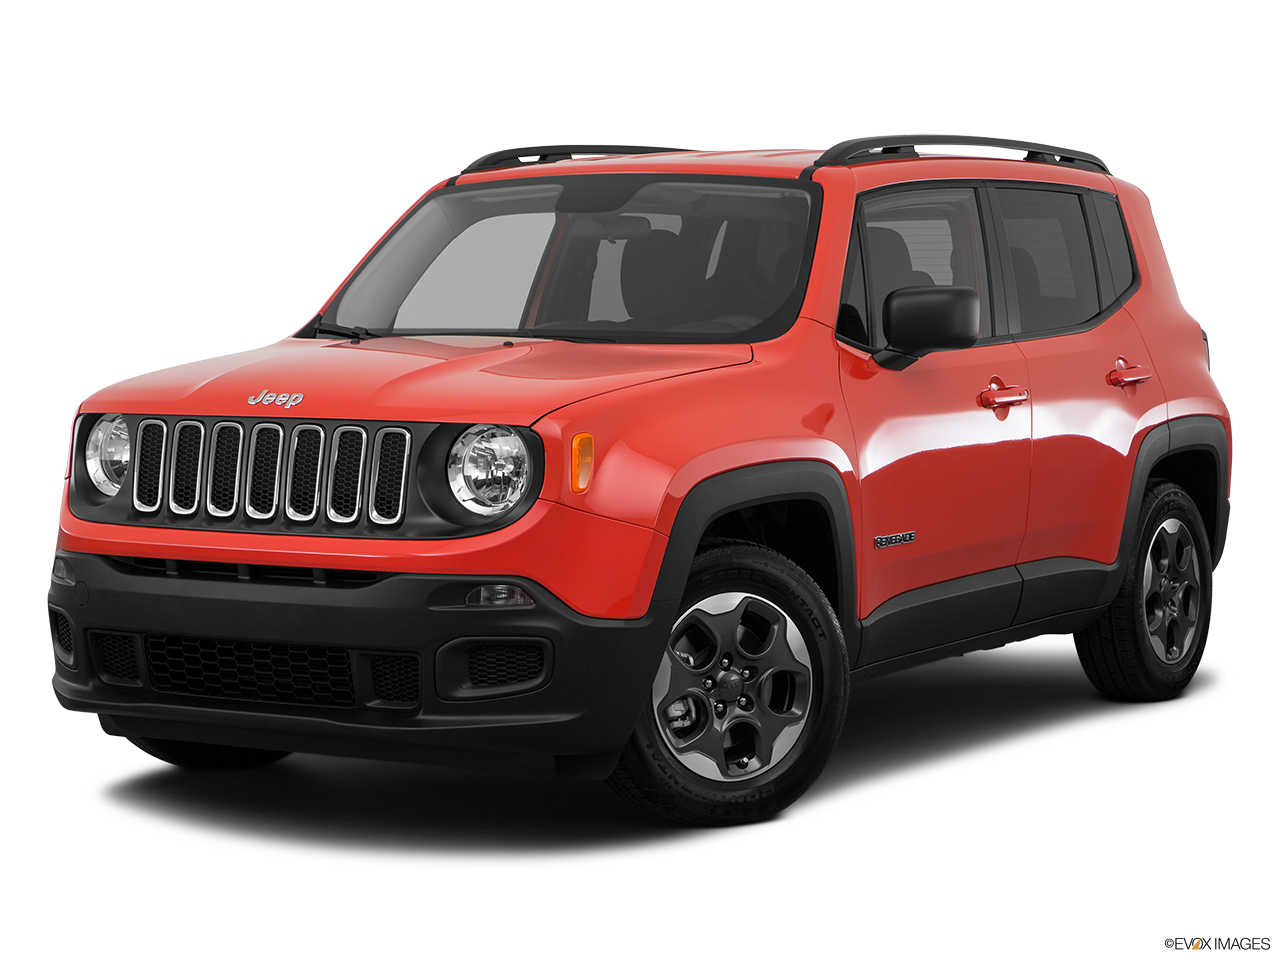 Test Drive A 2017 Jeep Renegade at Landmark Chrysler Dodge Jeep RAM of Morrow in Atlanta